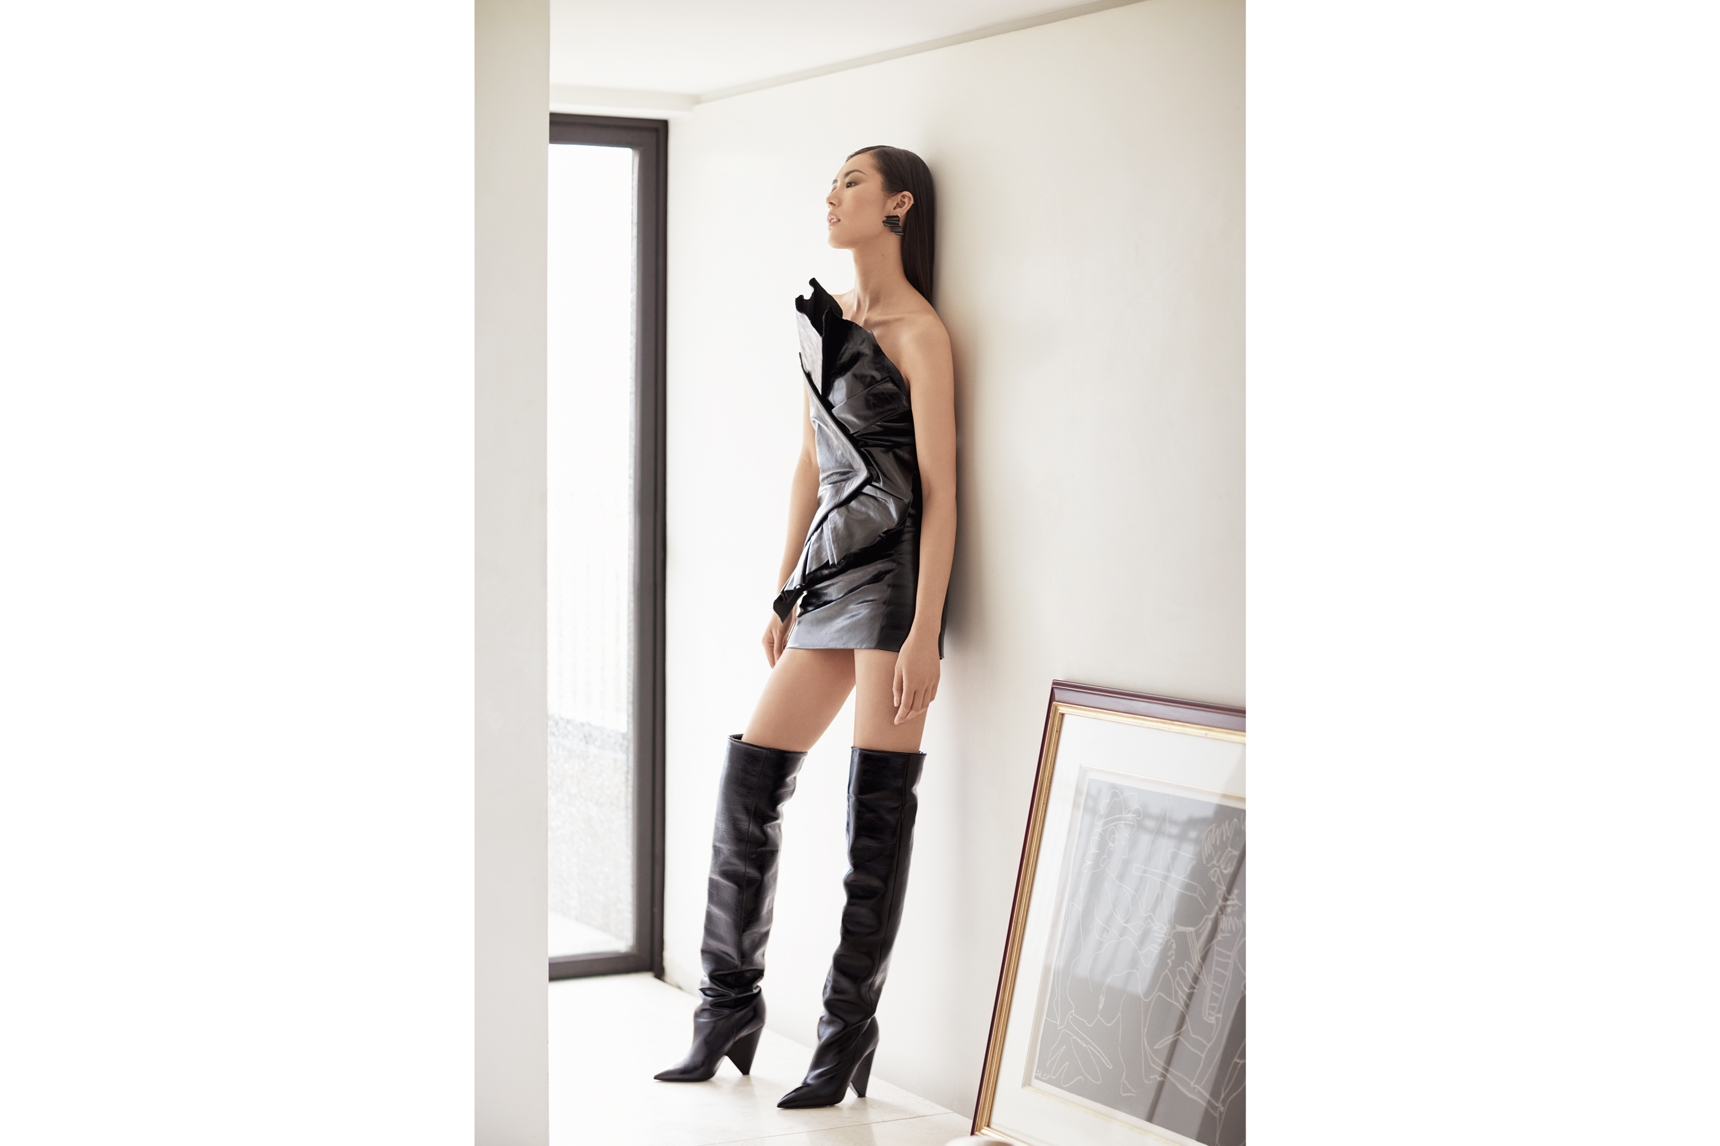 Saint Laurent by Anthony Vaccarello dress, boots and earrings. Image: Russell James